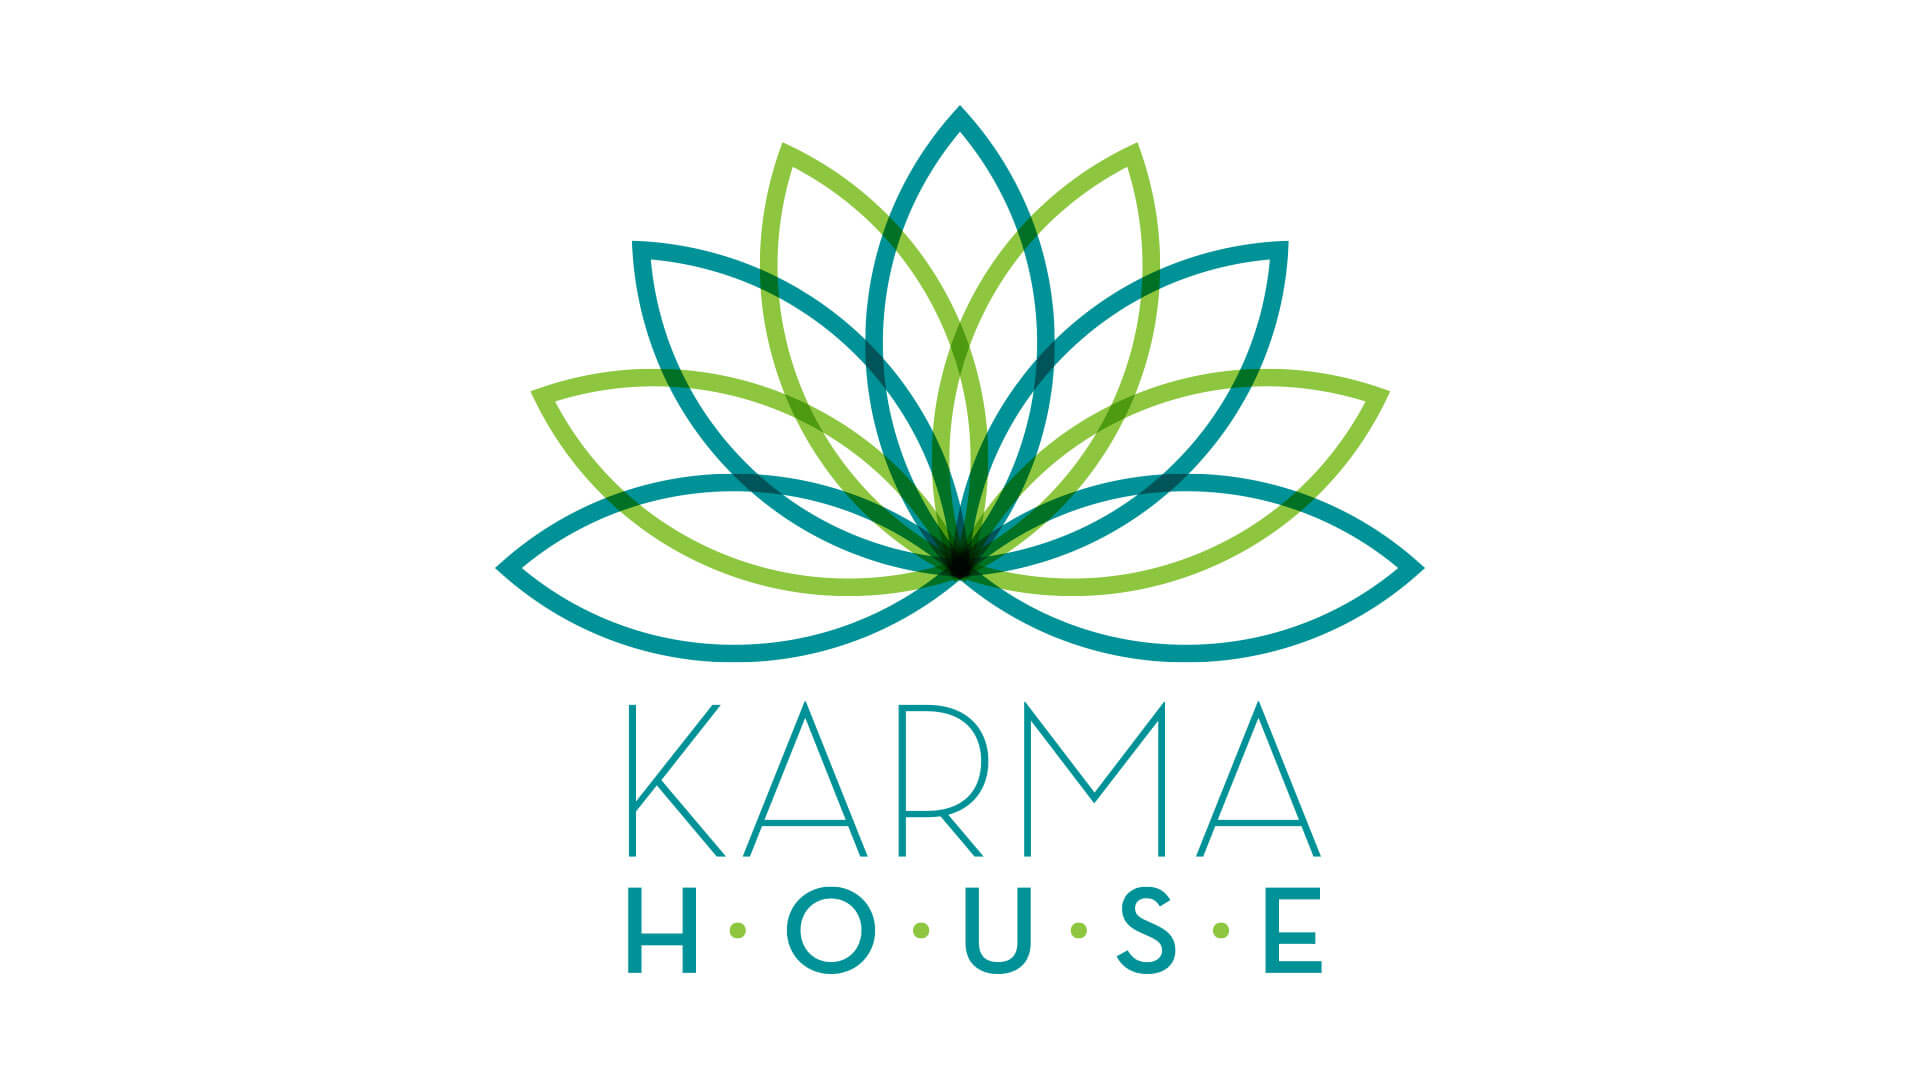 Logo karma house brian hill design for Karma home designs